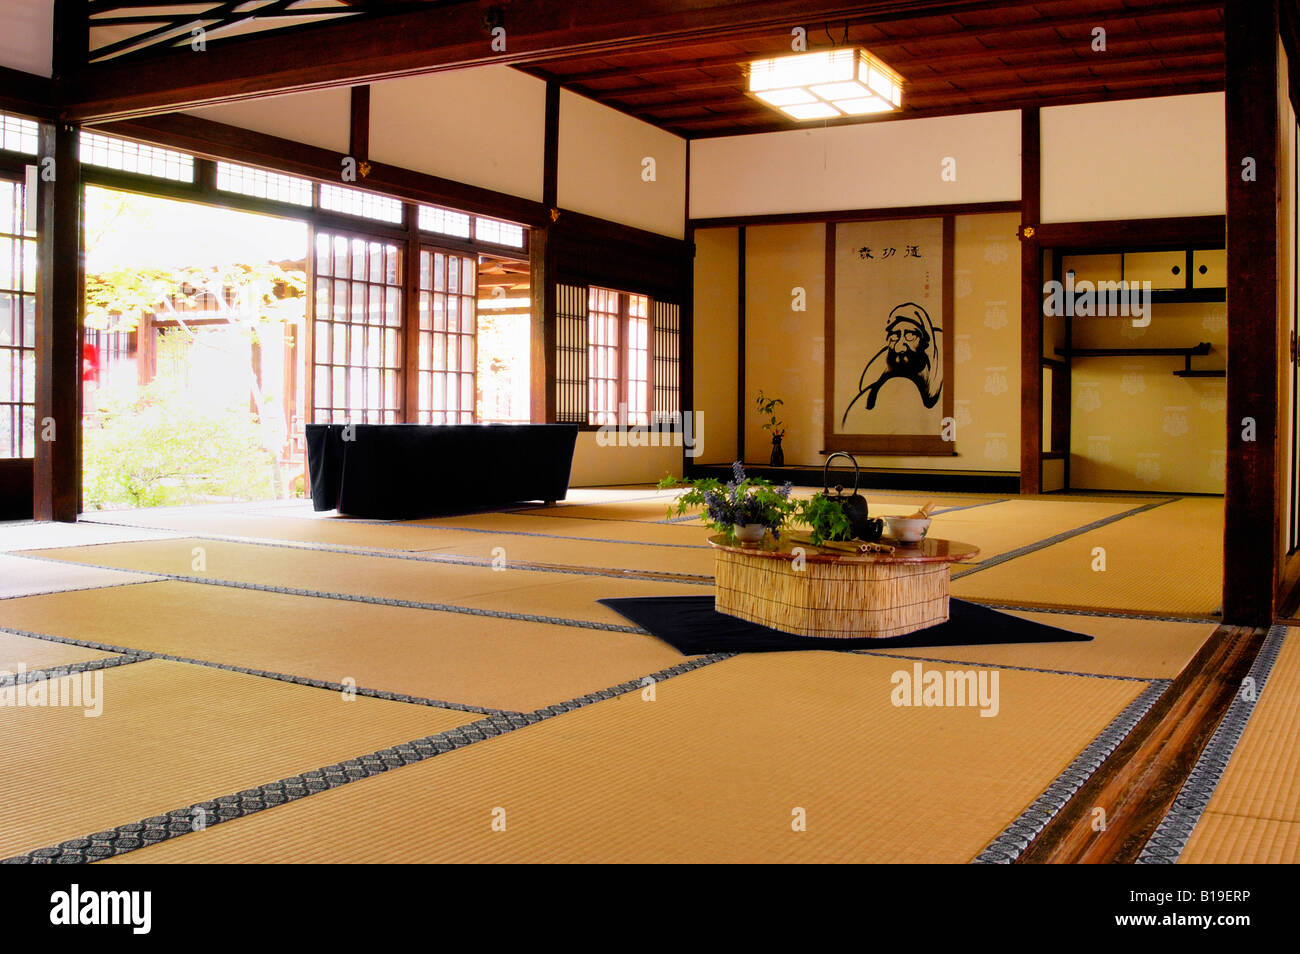 traditional old-style japanese home Kyoto Japan Stock Photo ... on nature architecture design, church architecture design, school architecture design, landscape architecture design, building architecture design, water architecture design, art architecture design, home architecture design, windows architecture design, garden architecture design, beach architecture design,